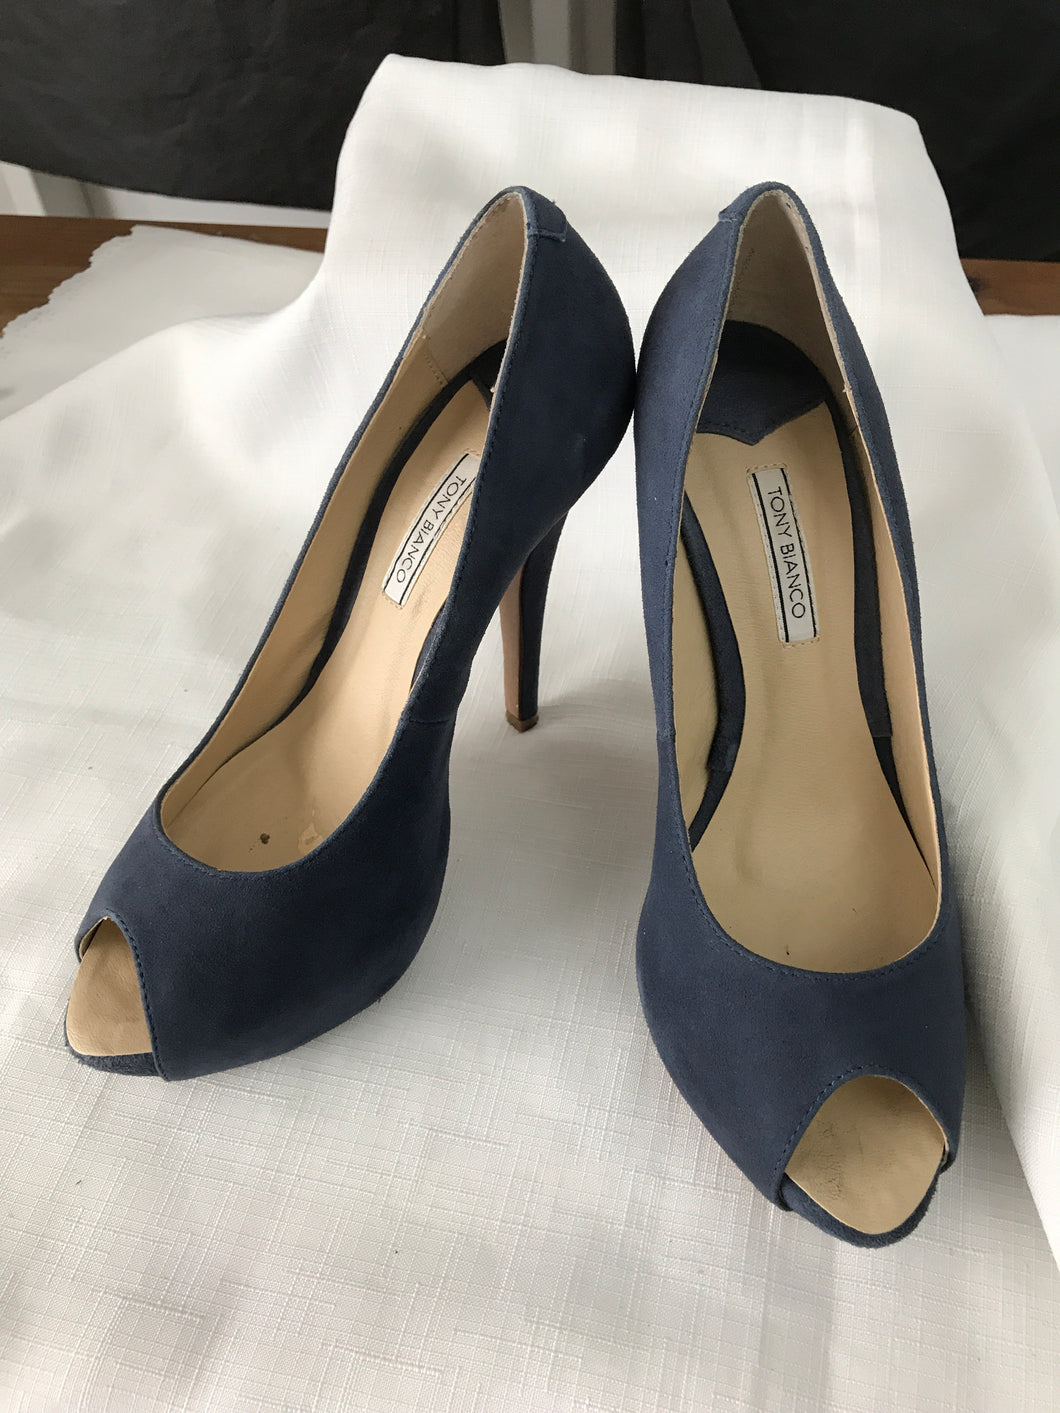 Tony Bianco blue peep toe pumps size 7 1/2